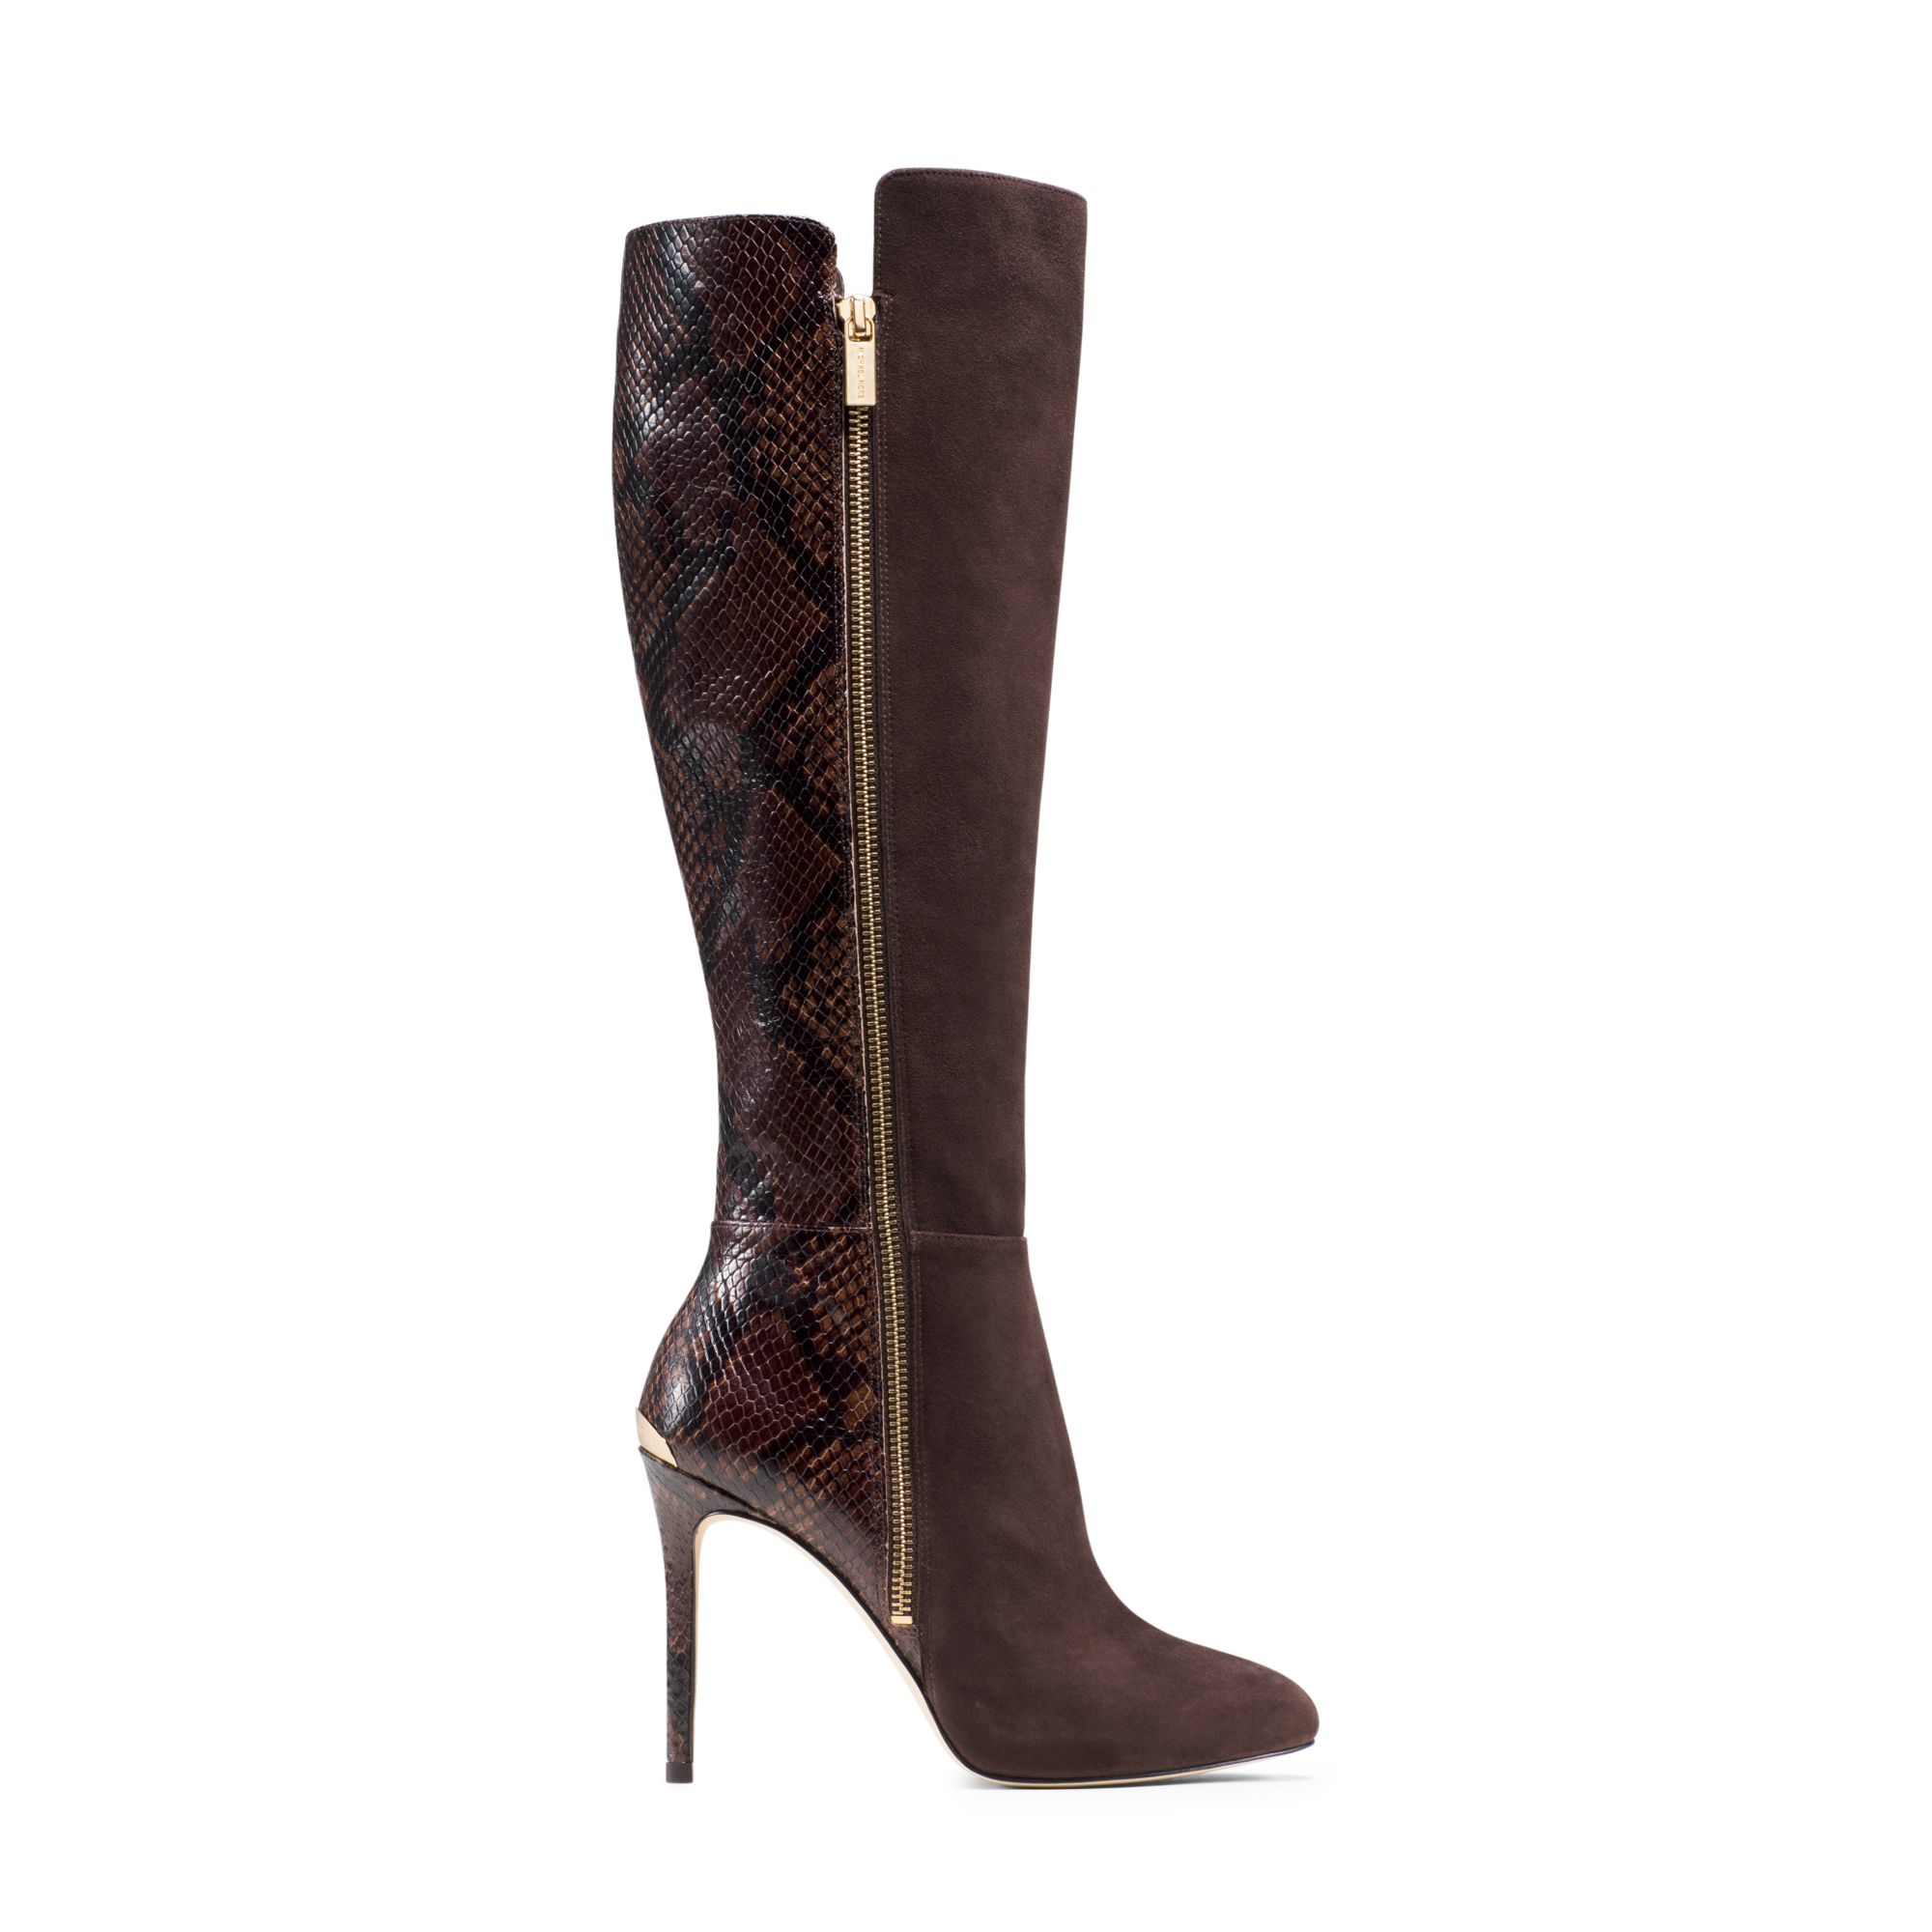 michael kors clara suede and embossed leather boot in brown lyst. Black Bedroom Furniture Sets. Home Design Ideas